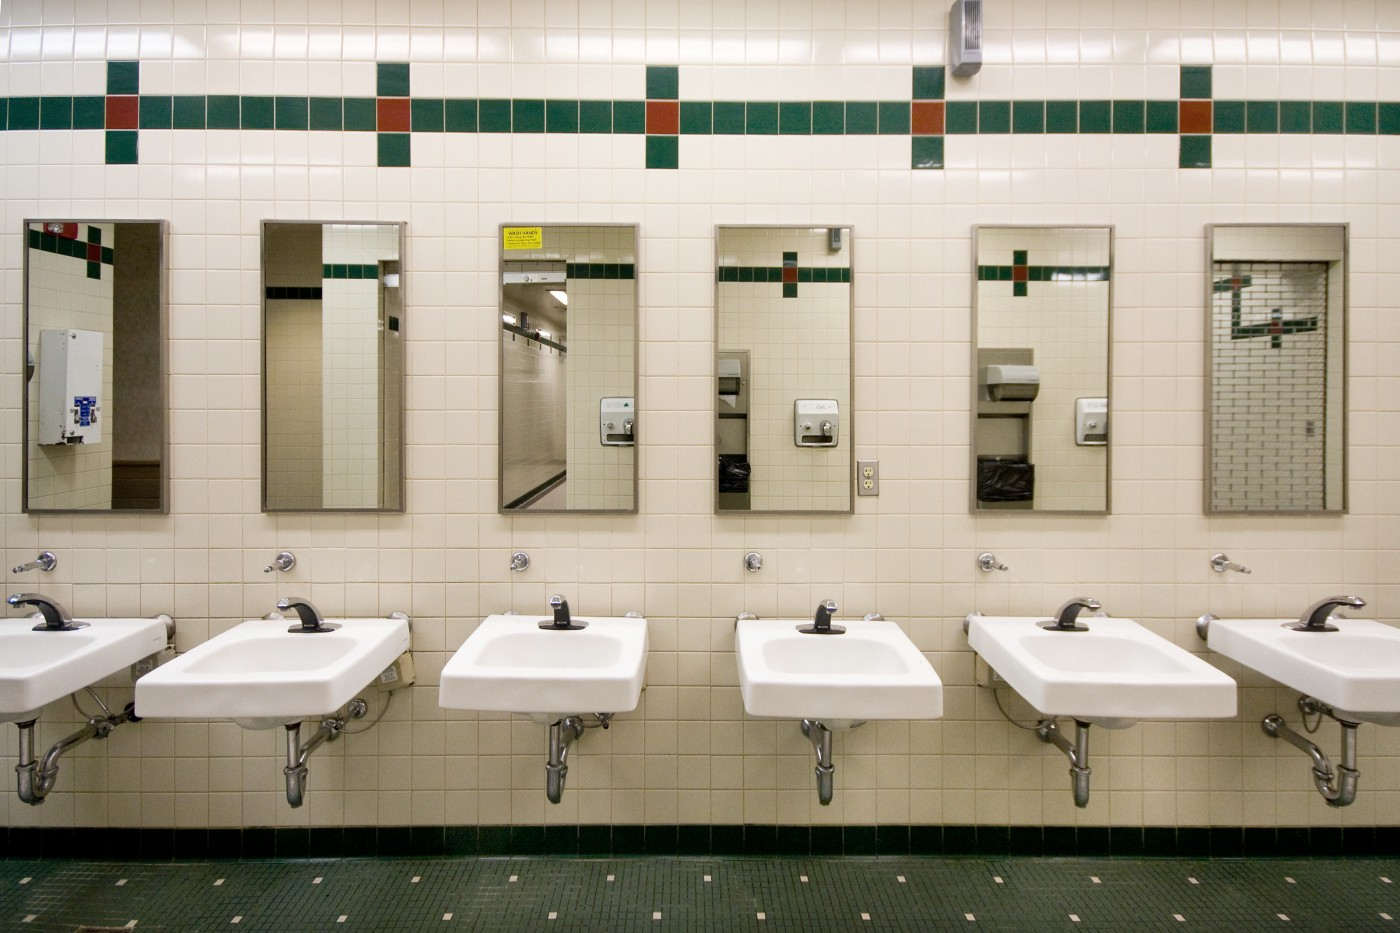 A view of the sinks and mirrors in a public bathroom.